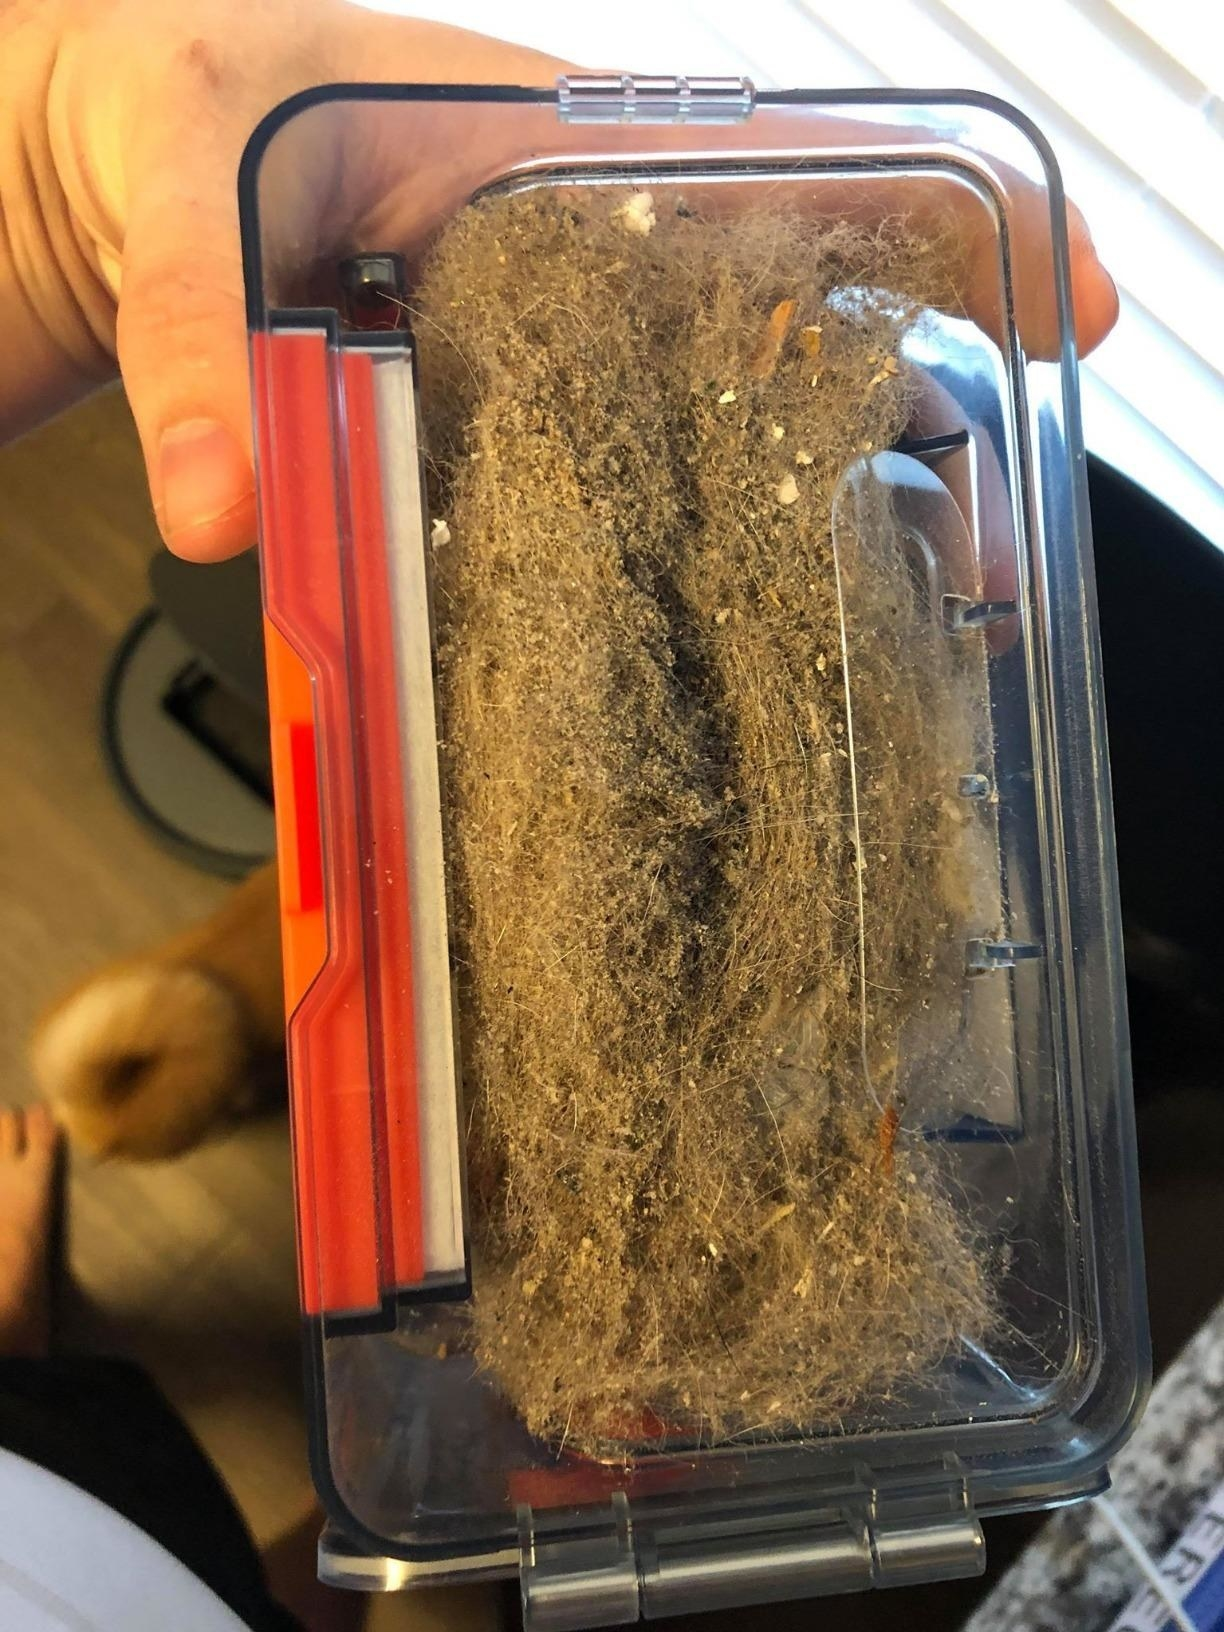 Reviewer showing how much dirt and fur the vacuum picked up